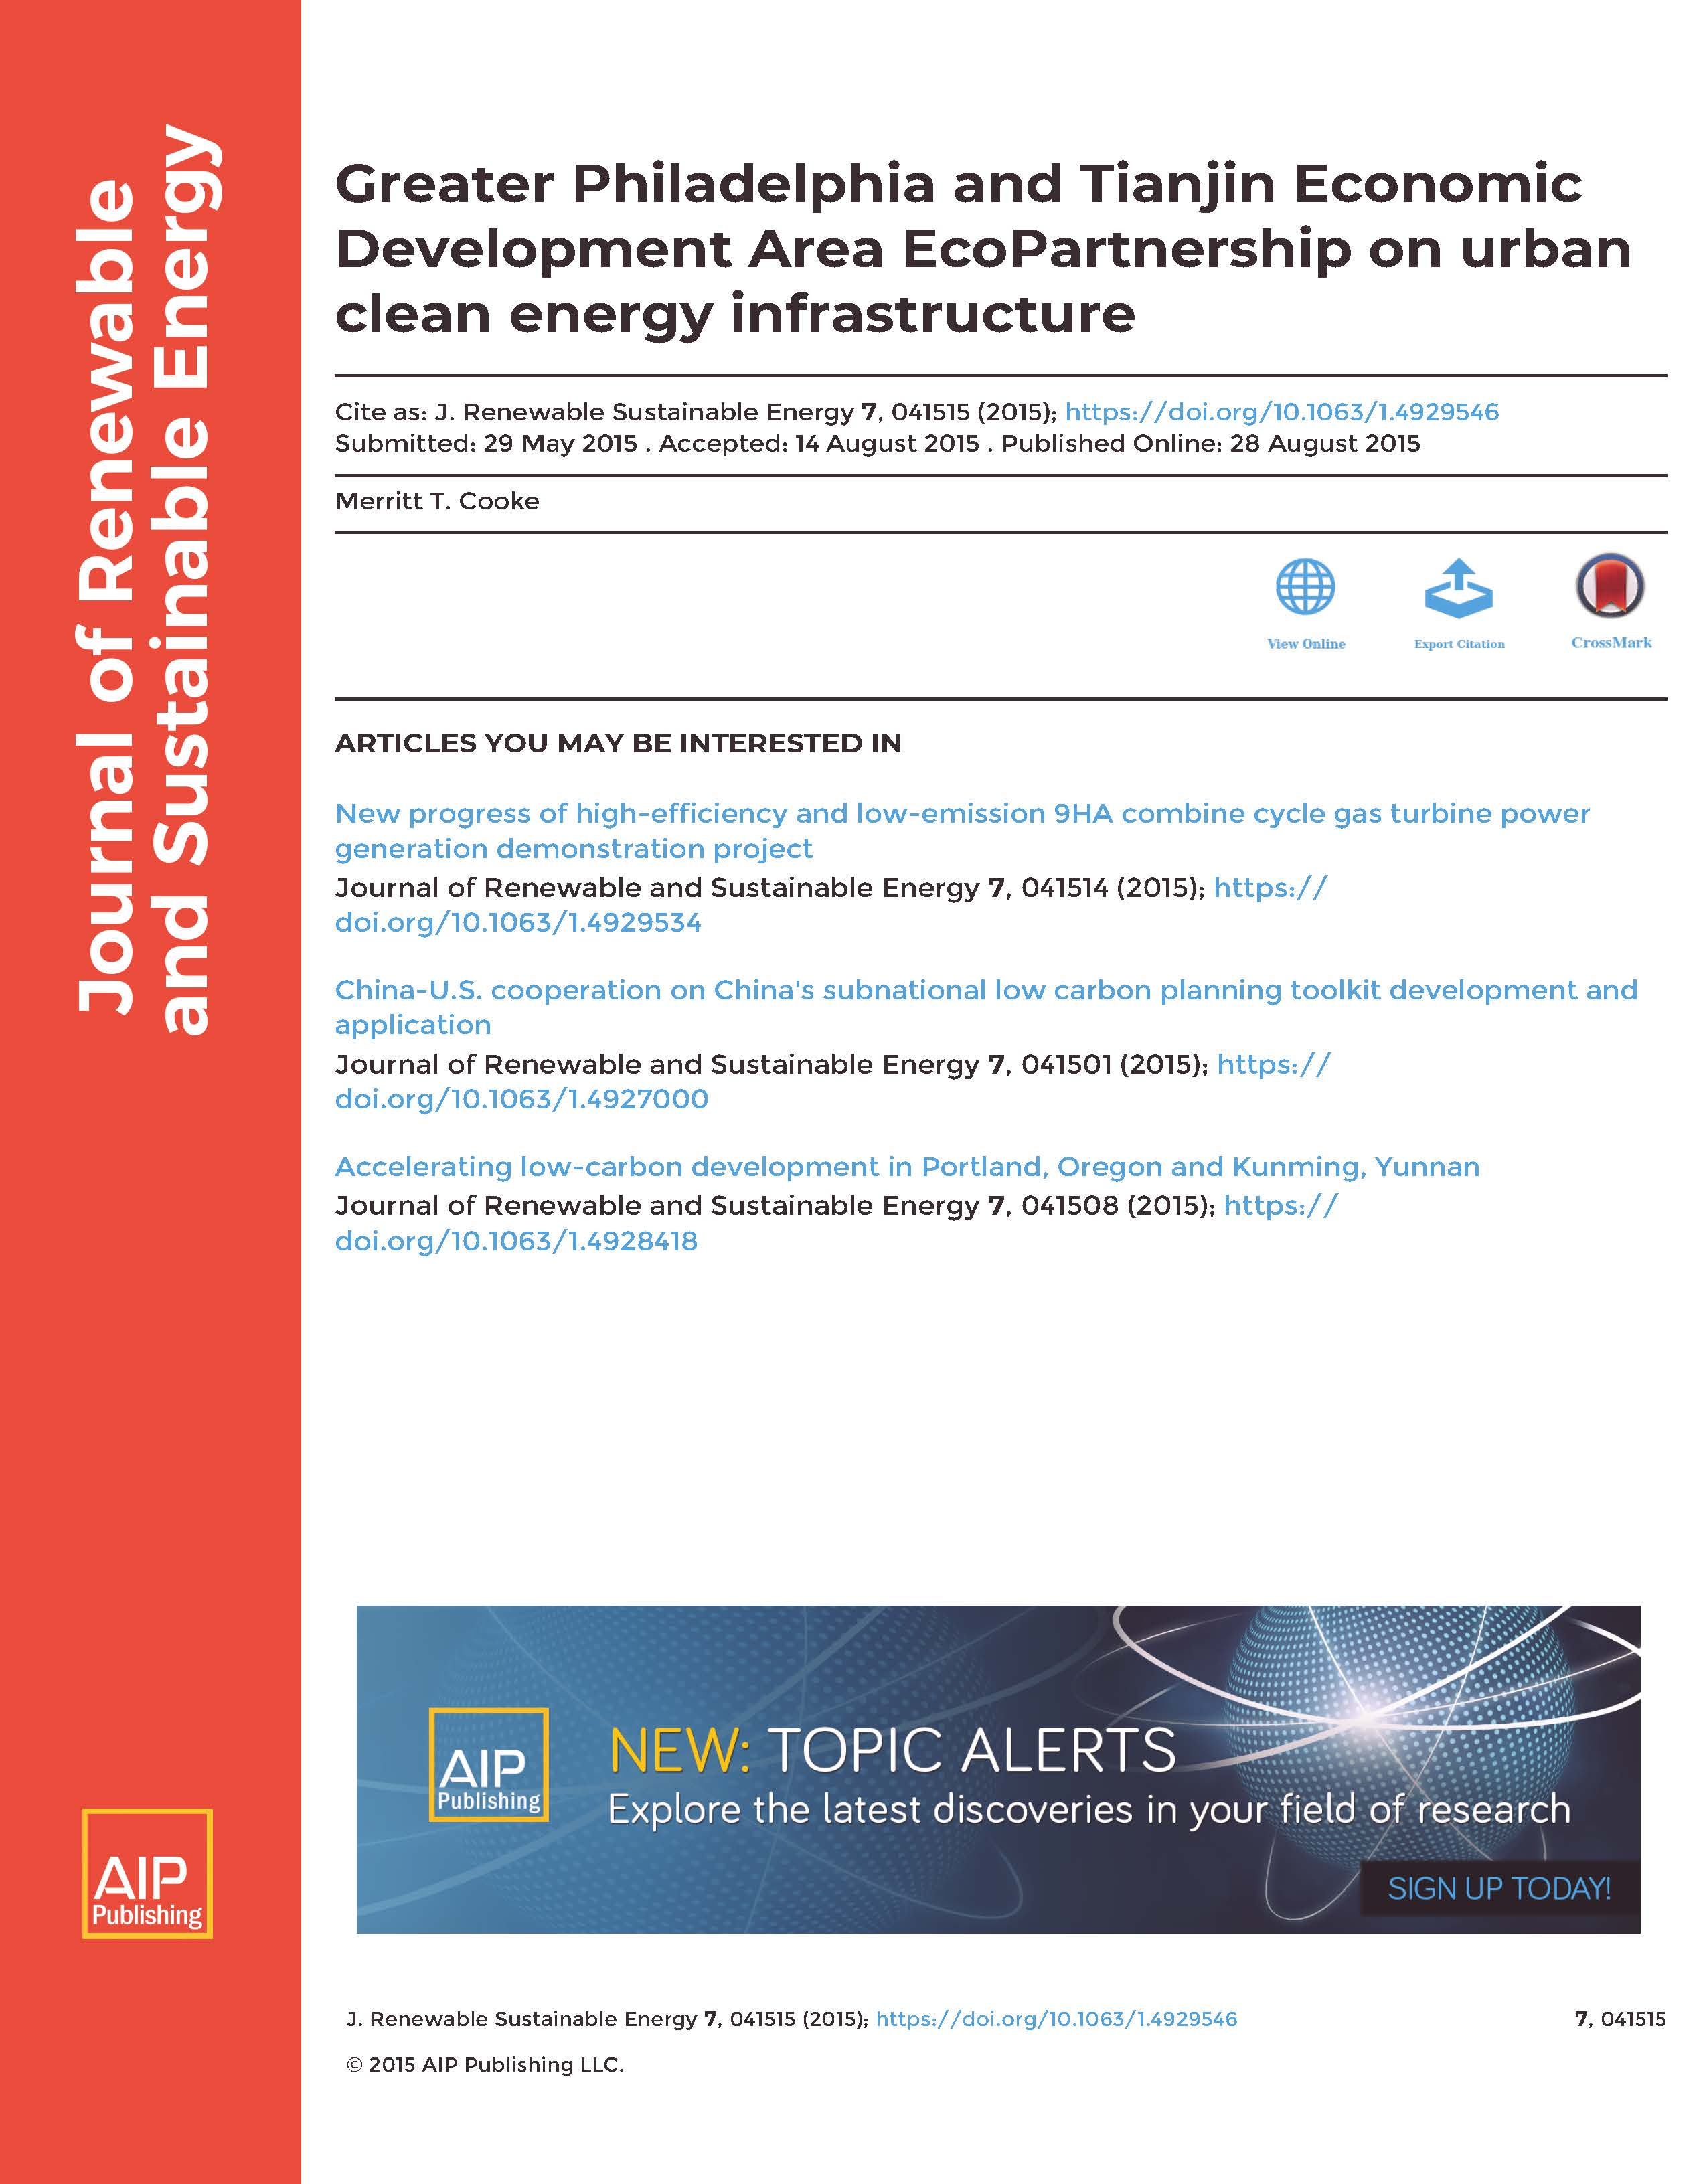 Greater Philadelphia and Tianjin Economic Development Area EcoPartnership on urban clean energy infrastructure